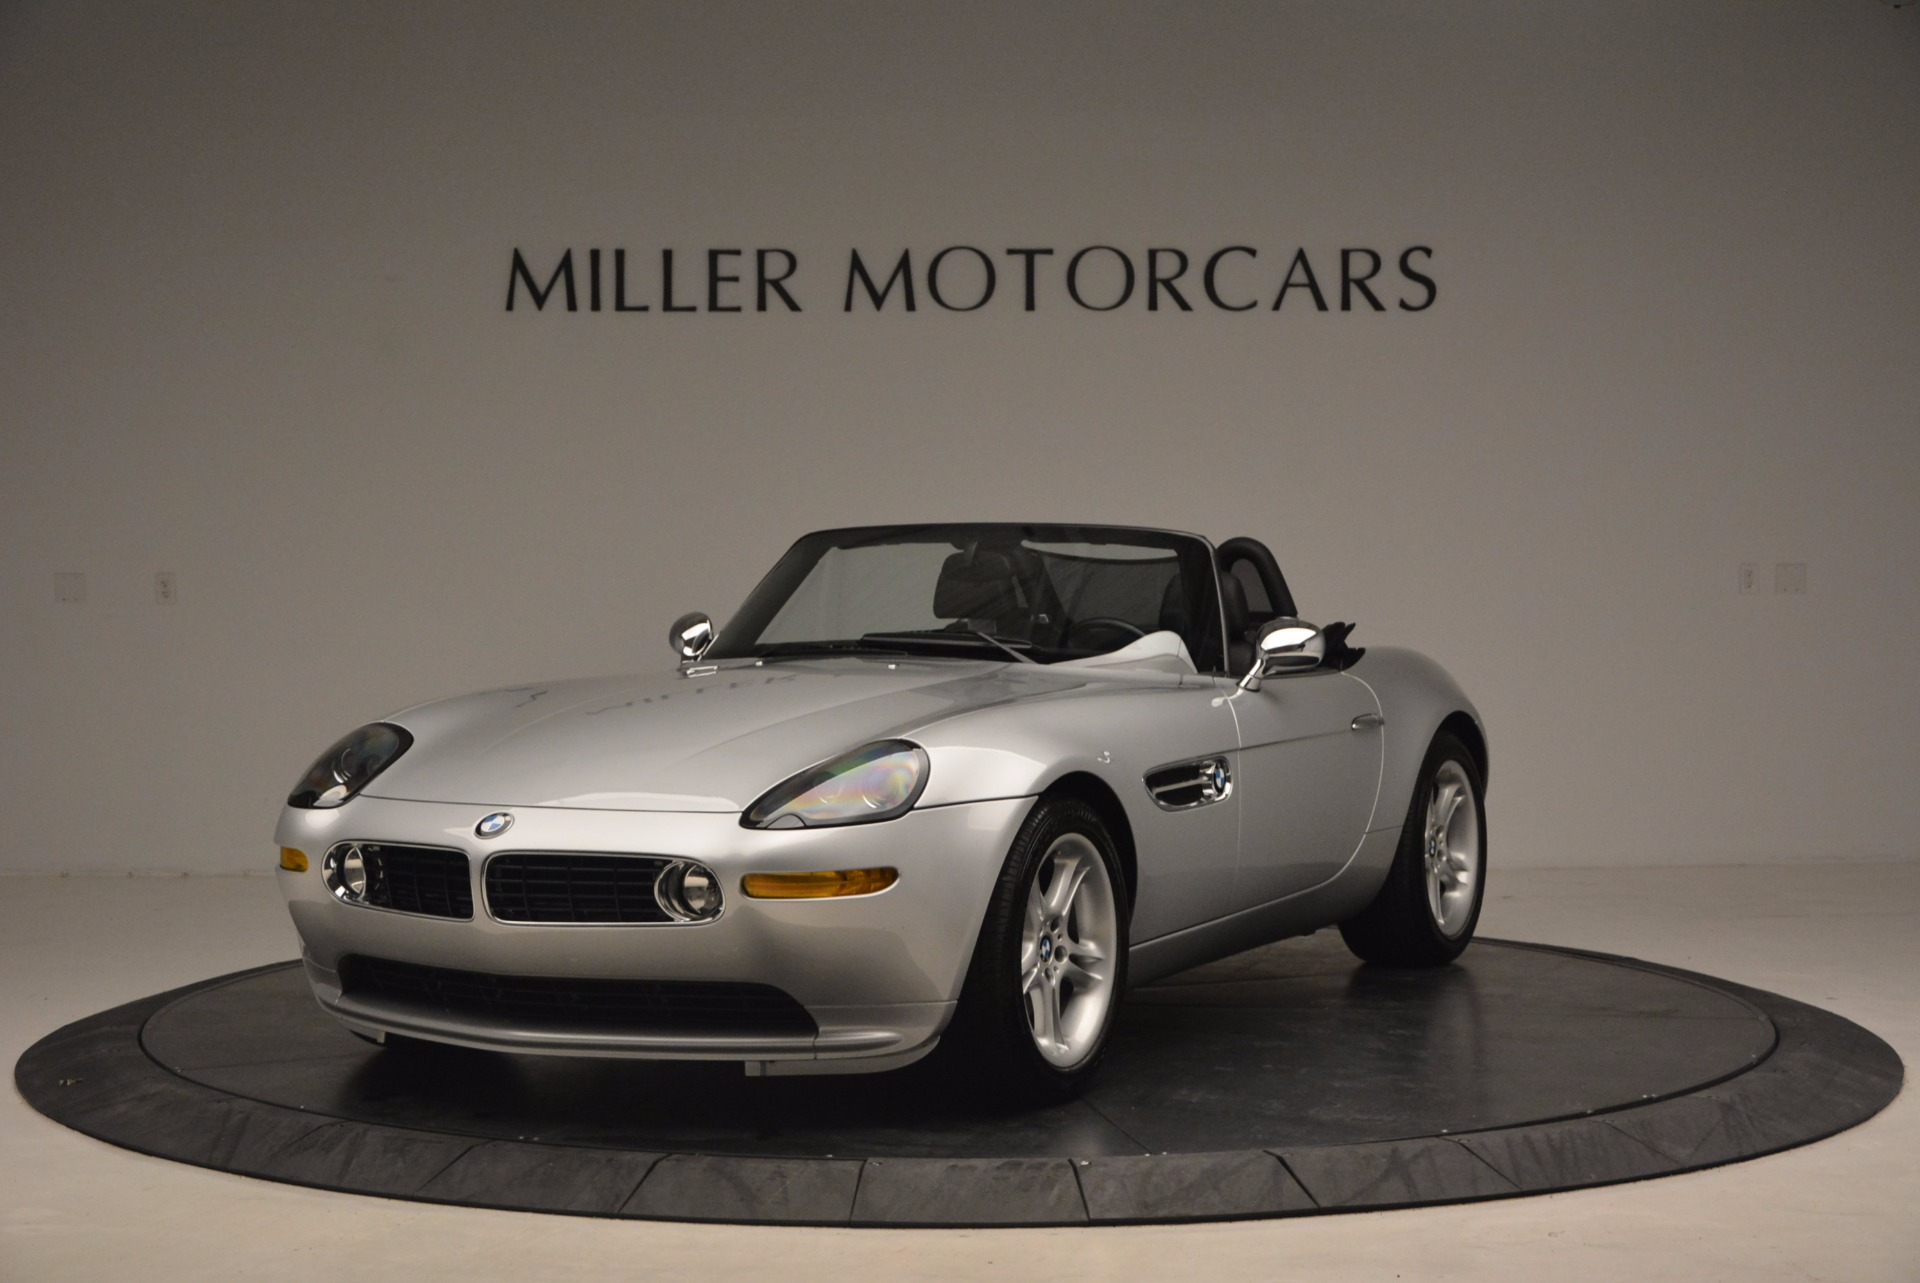 Used 2001 BMW Z8 for sale Sold at Bugatti of Greenwich in Greenwich CT 06830 1